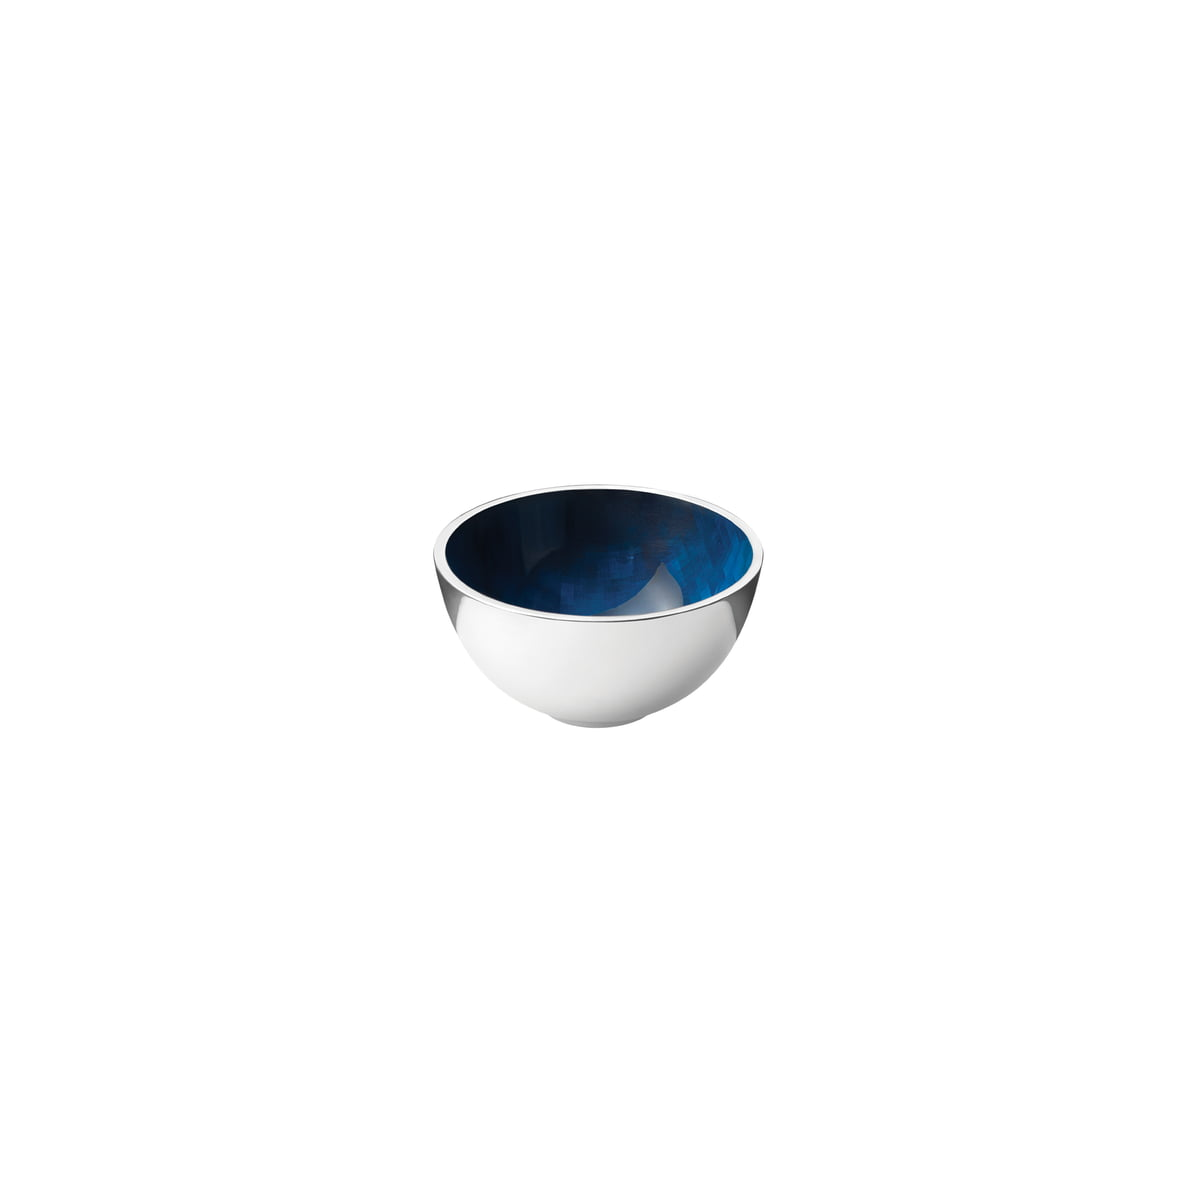 Stockholm Aquatic Schale medium Stelton